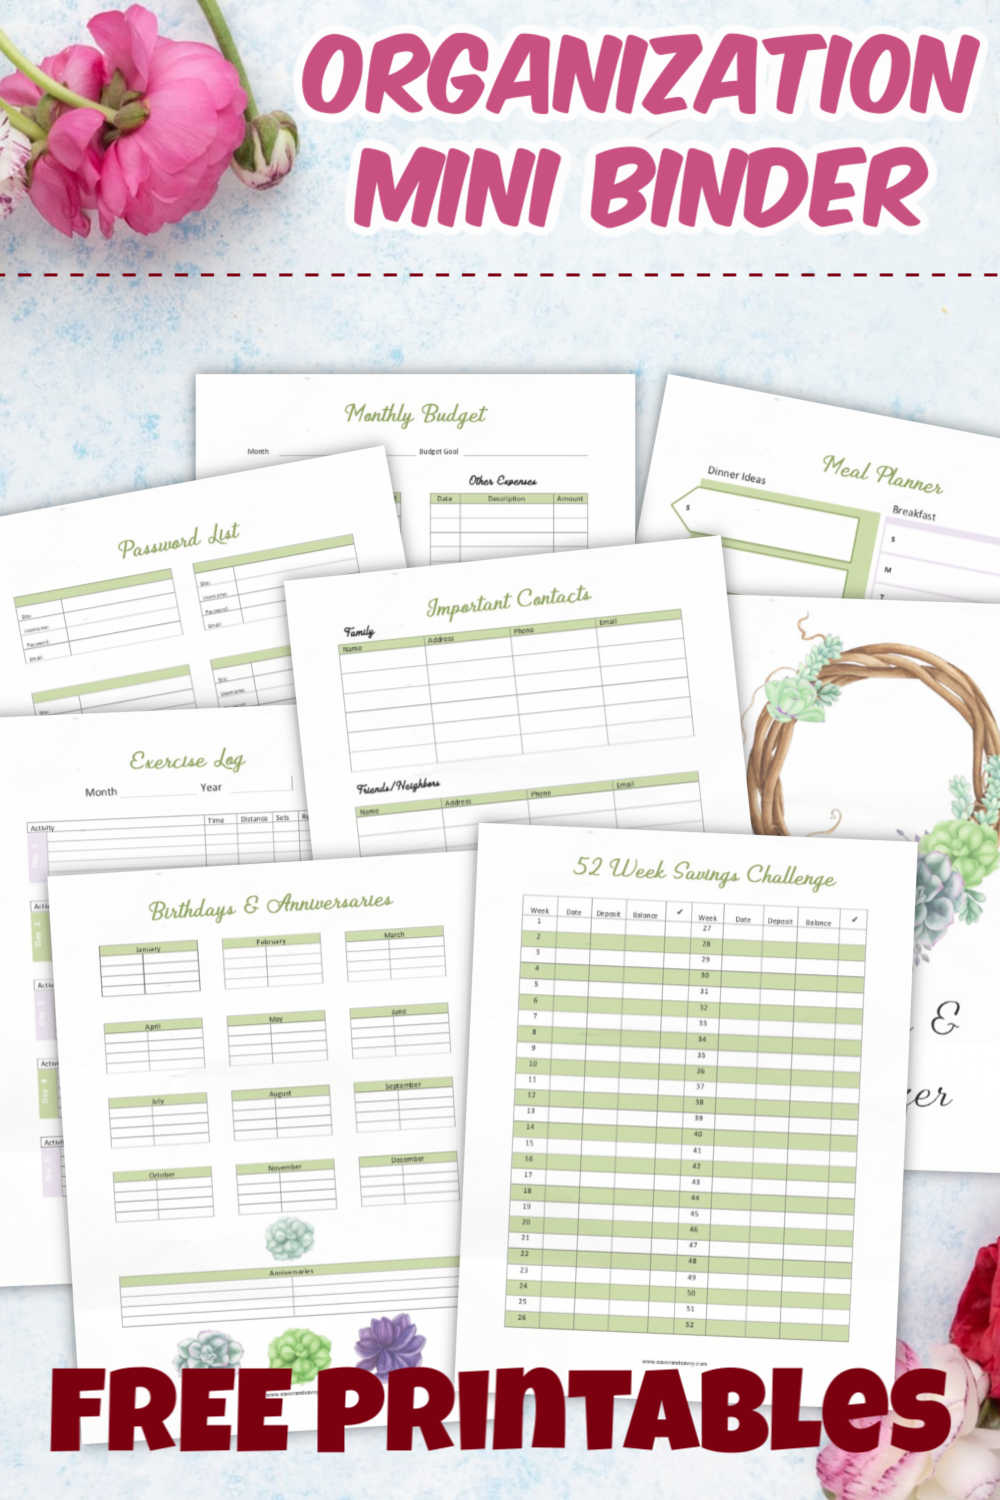 Got Stress? This Creative Organizational Mini Binder Printables is for You!